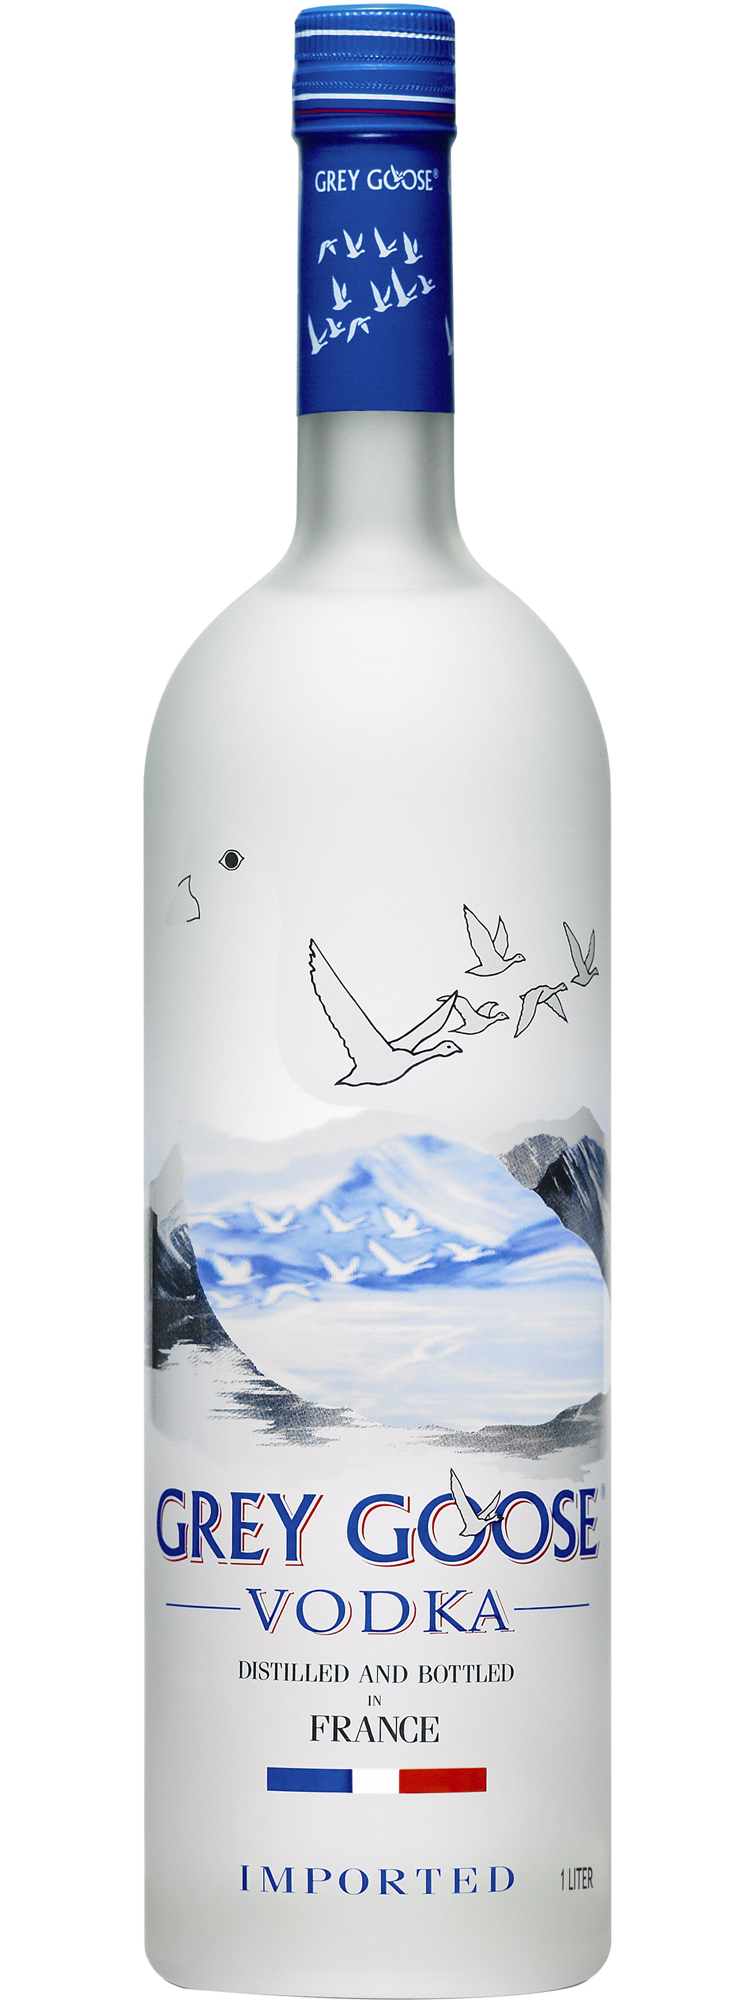 GREY GOOSE 375 ML.